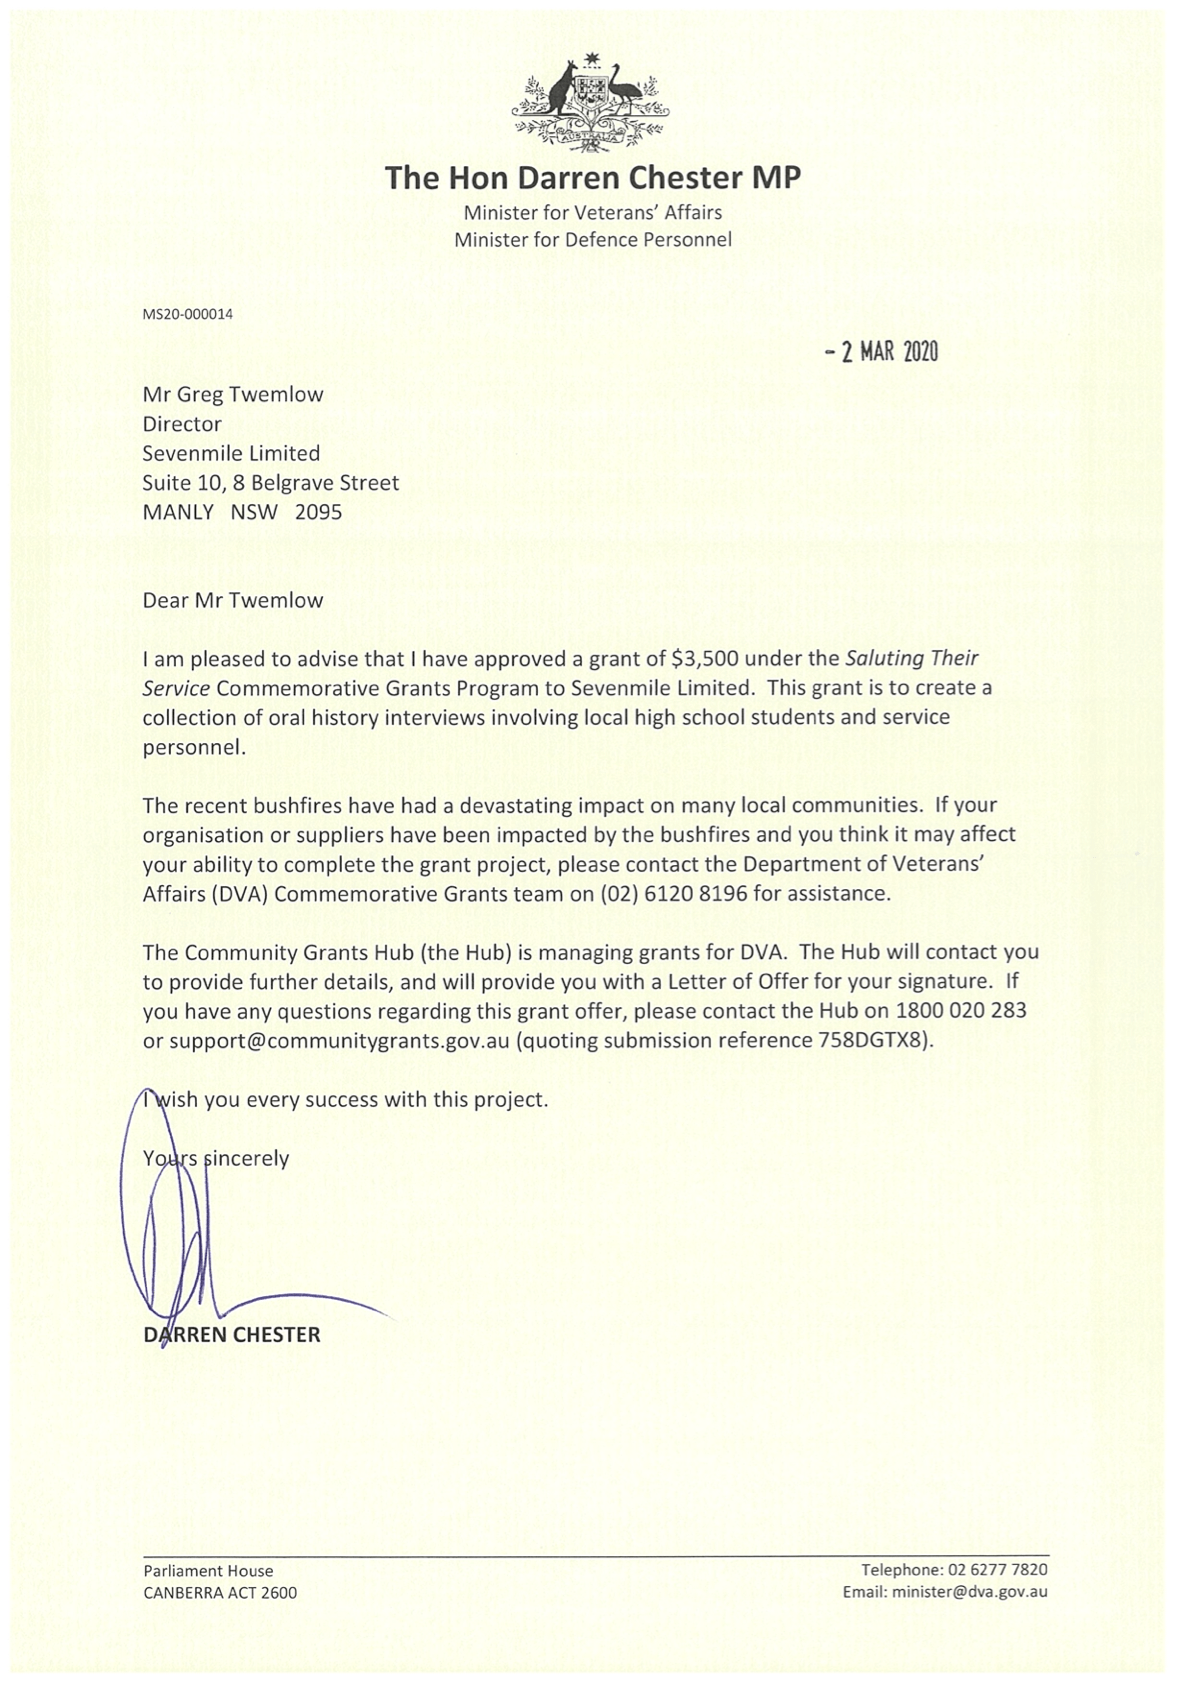 letter from Hon Darren Chester Minister for Veterans Affairs awarding a Grant to SEVENmile Ltd